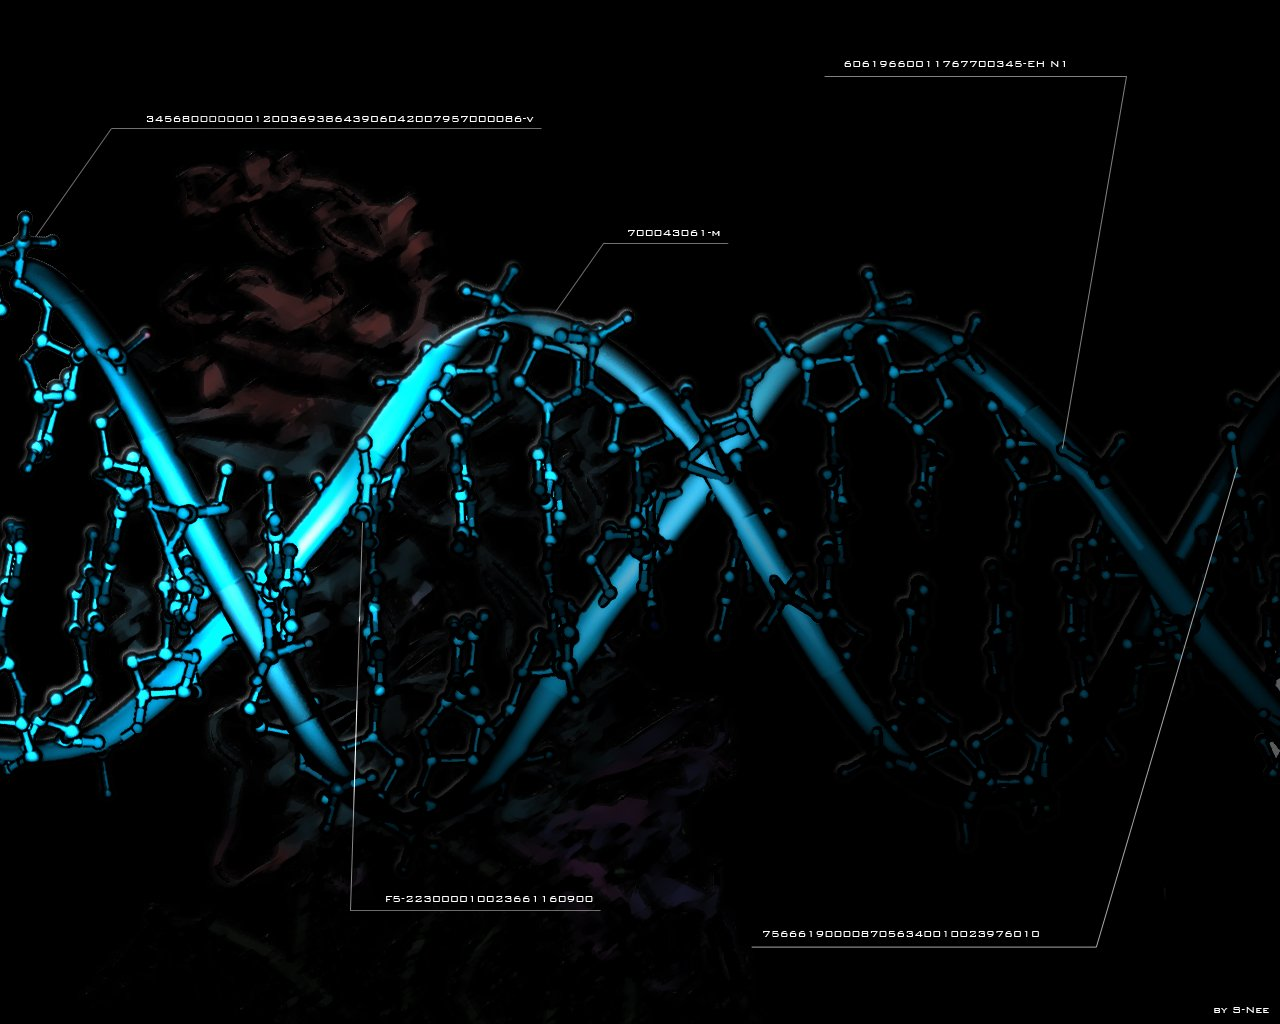 dna molecule wallpaper in hd Dna Wallpaper High Resolution 1280x1024